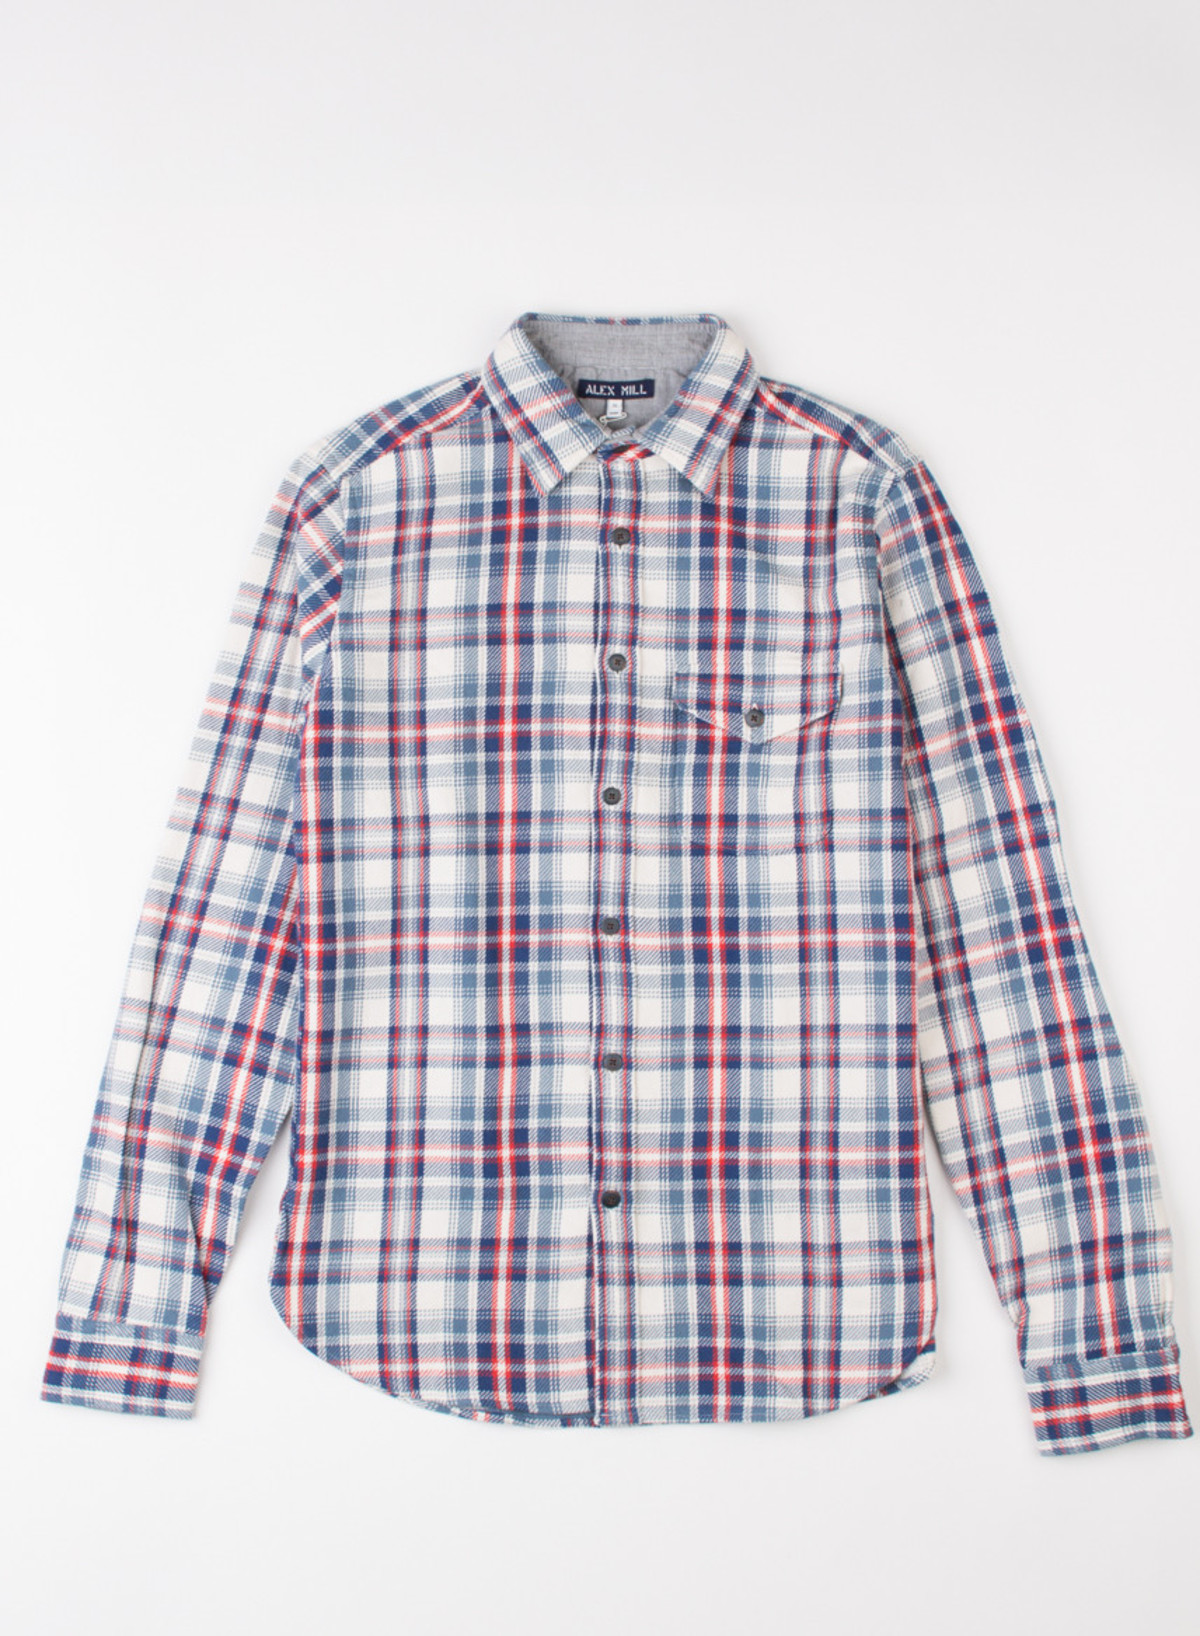 Shop for women s plaid shirt at pimpfilmzcq.cf Free Shipping. Free Returns. All the time.